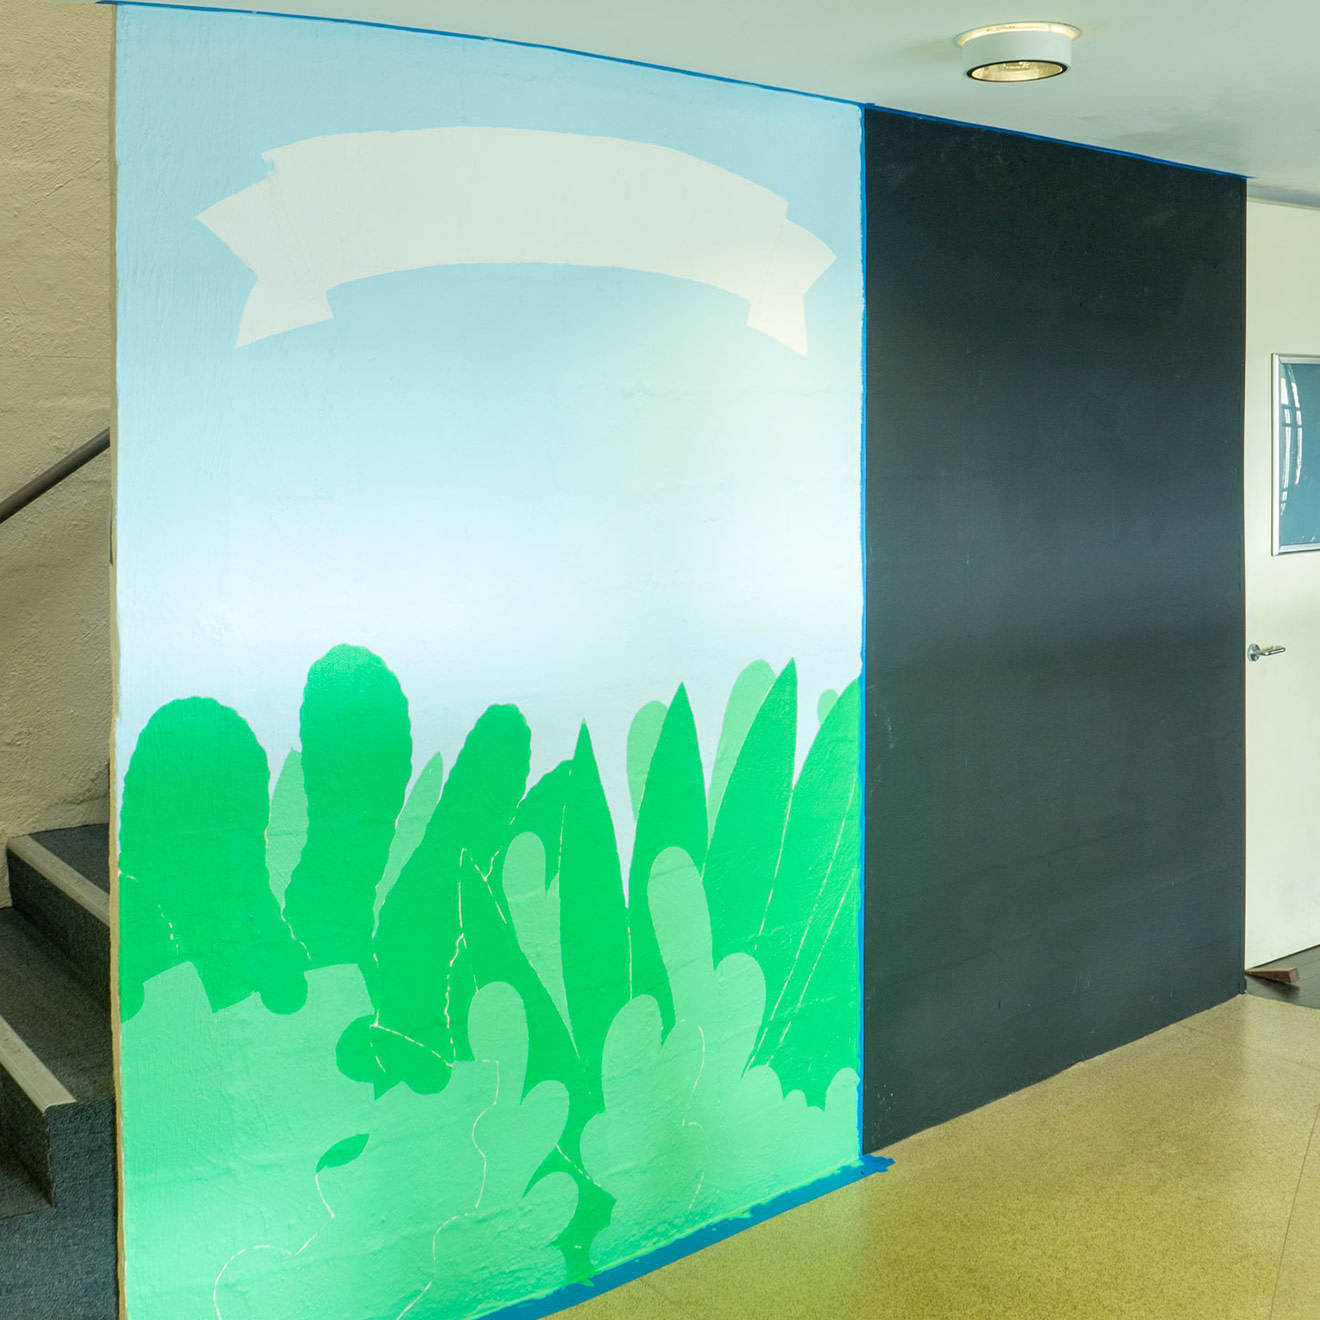 Work in progress of a mural painting featuring trees and blue sky